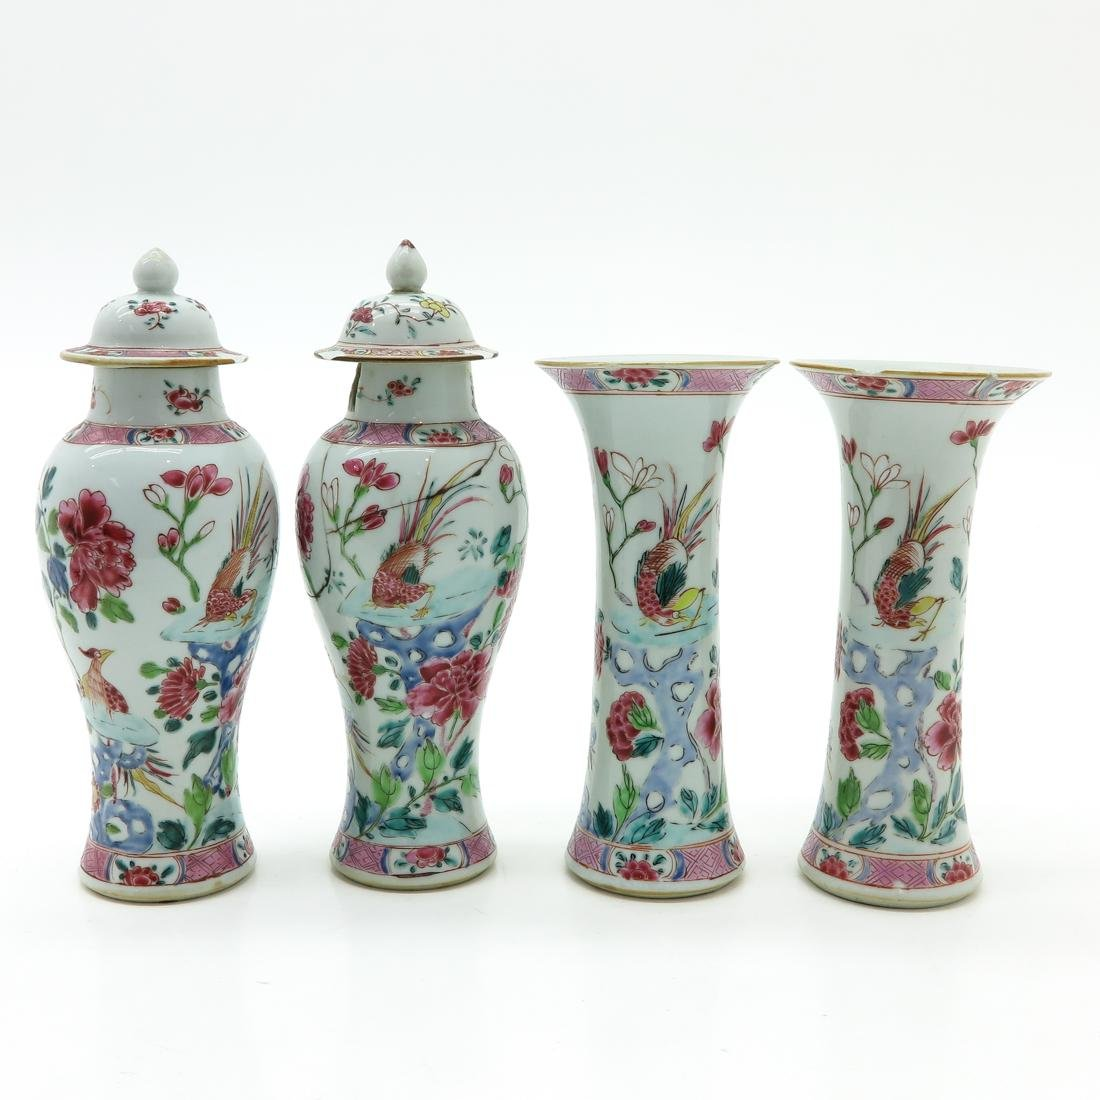 4 Piece Garniture Set